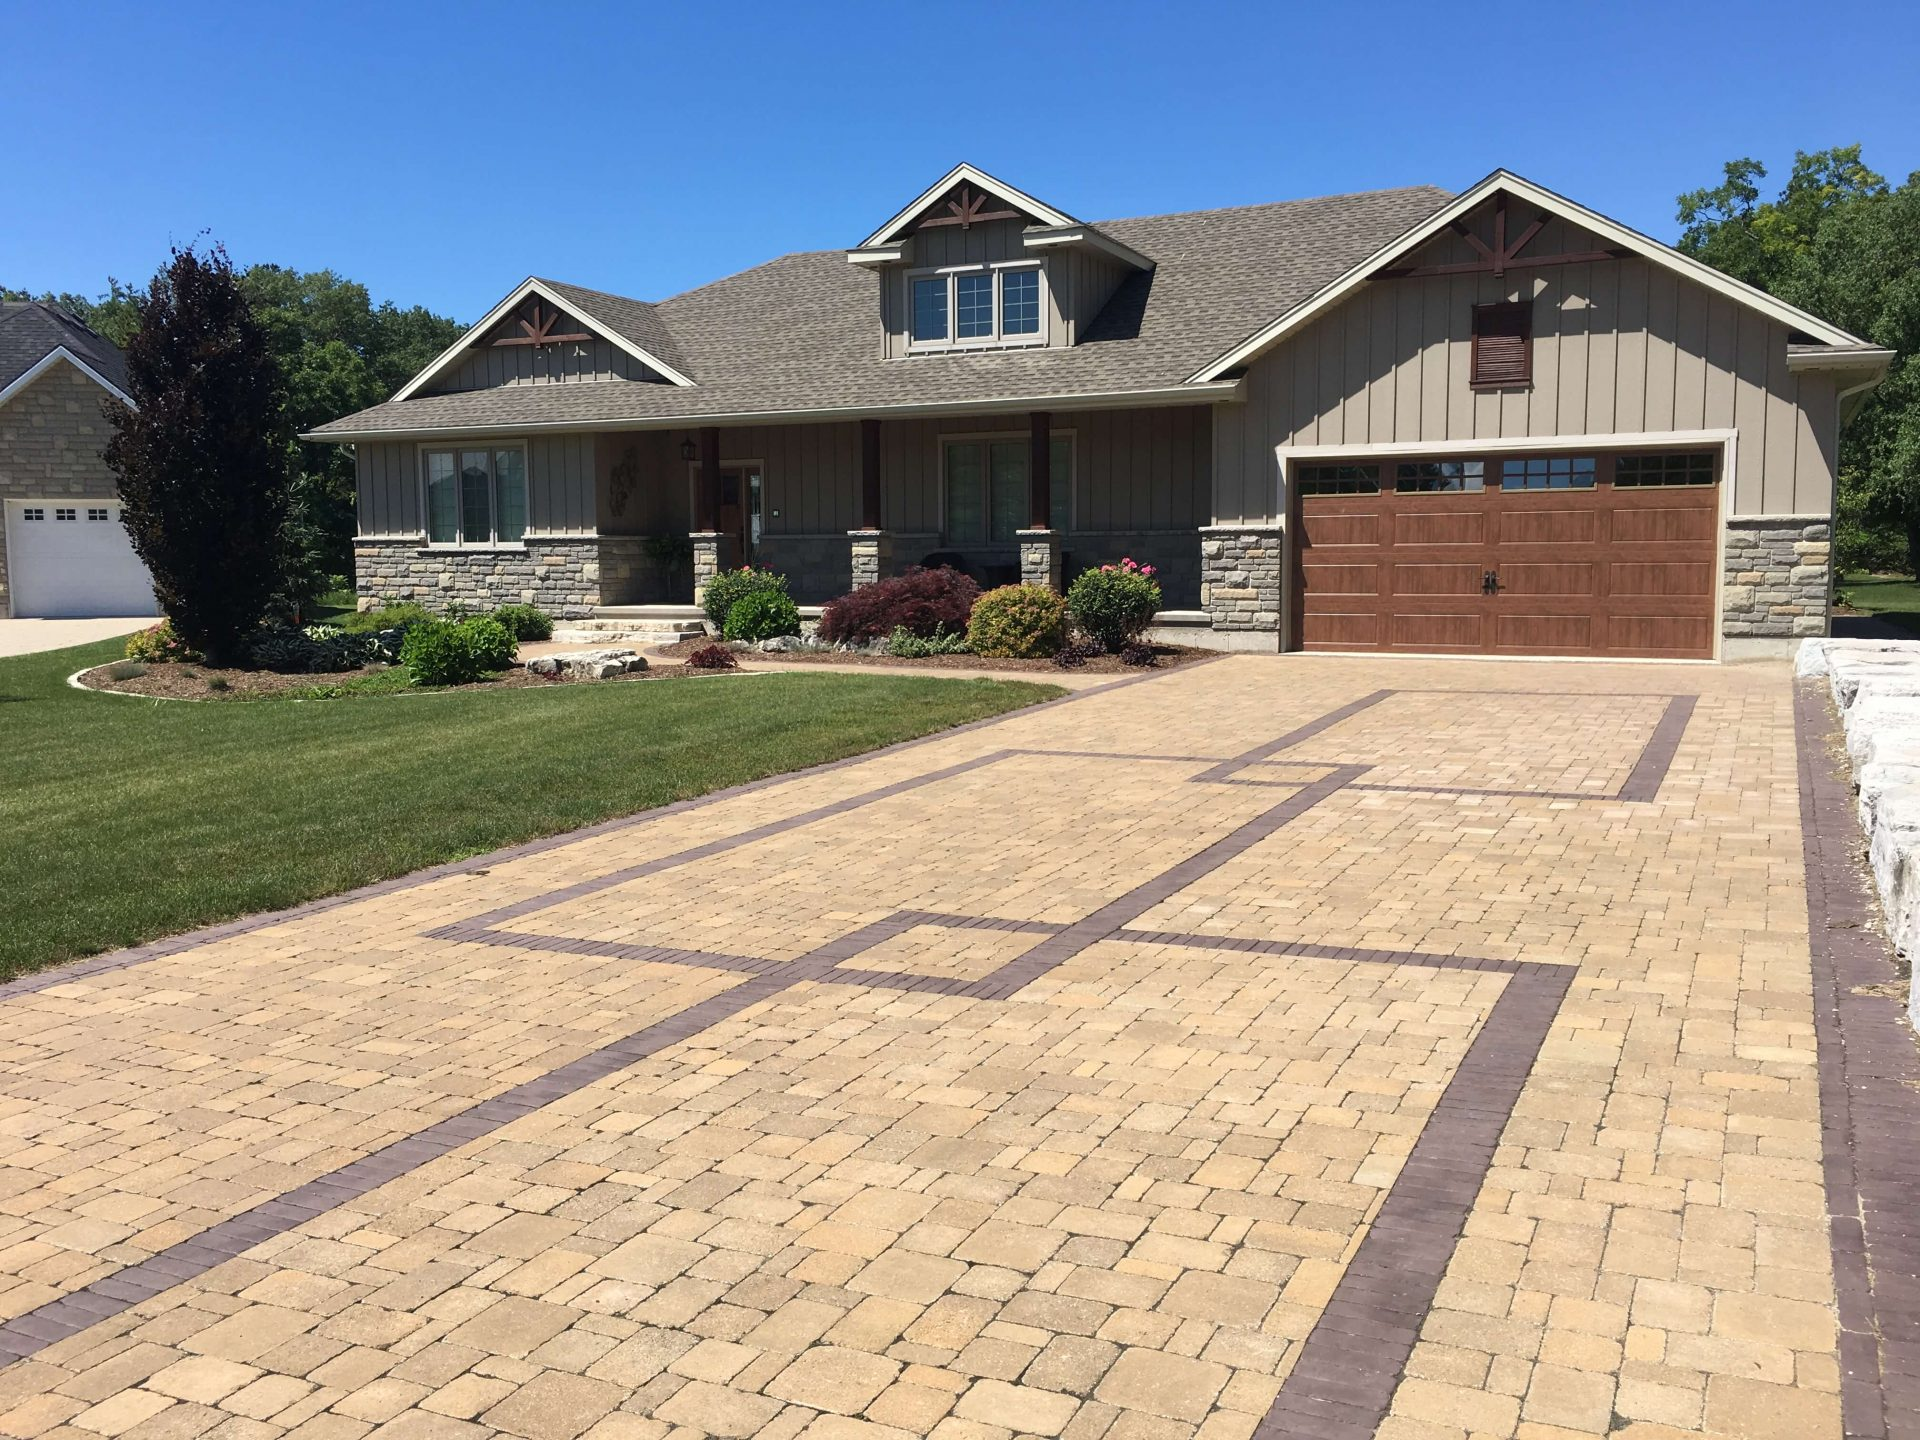 Large drive way view of bungalow home